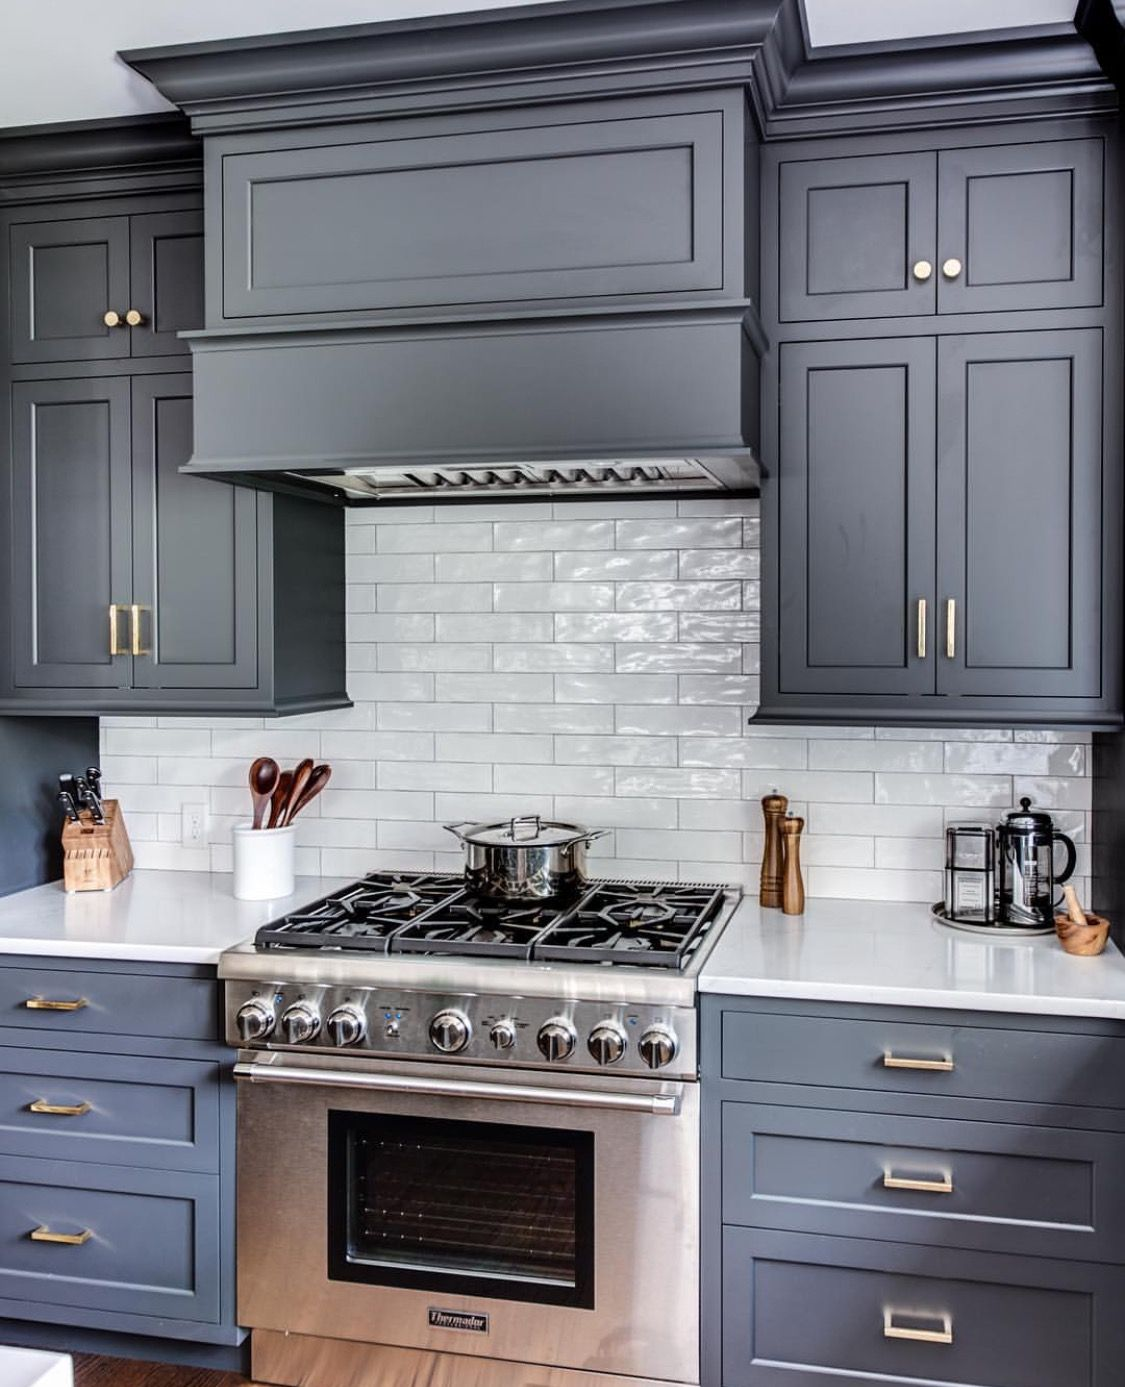 Cabinet Color Wrought Iron By Benjamin Moore Range And Hood Insert Pro Harmony 36 Kitchen Cabinet Design Kitchen Cabinets Decor Modern Farmhouse Kitchens